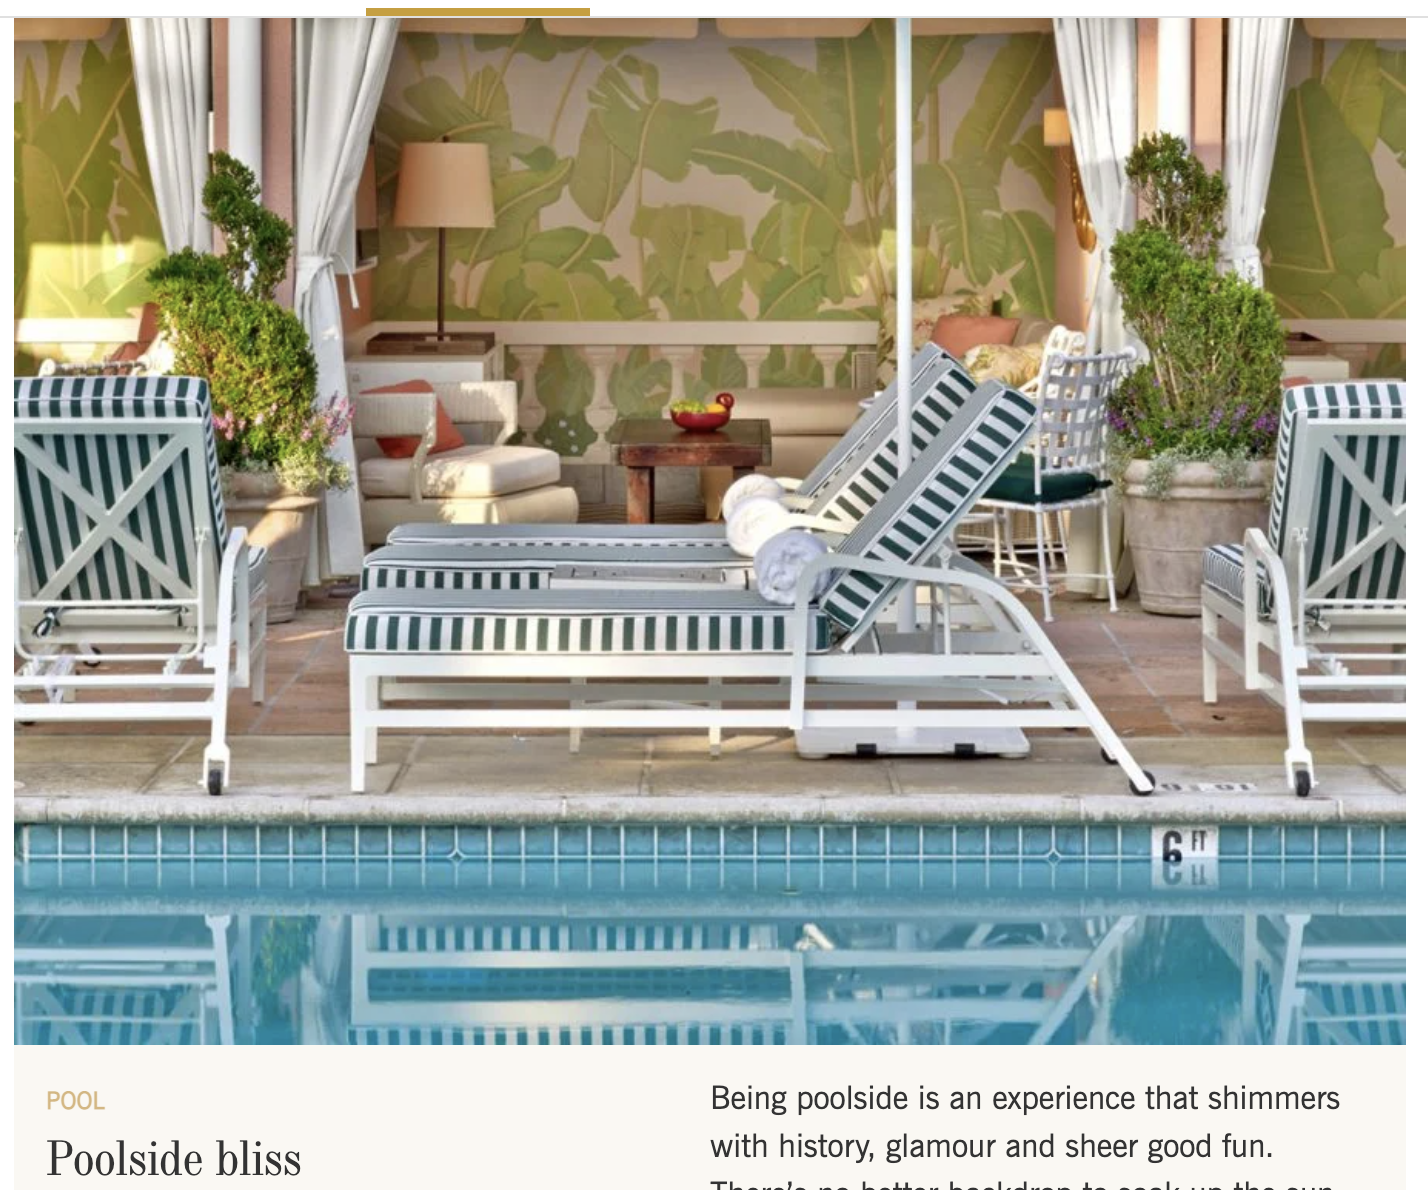 Bring the Iconic Beverly Hills Hotel Aesthetic to your own Home & Wardrobe